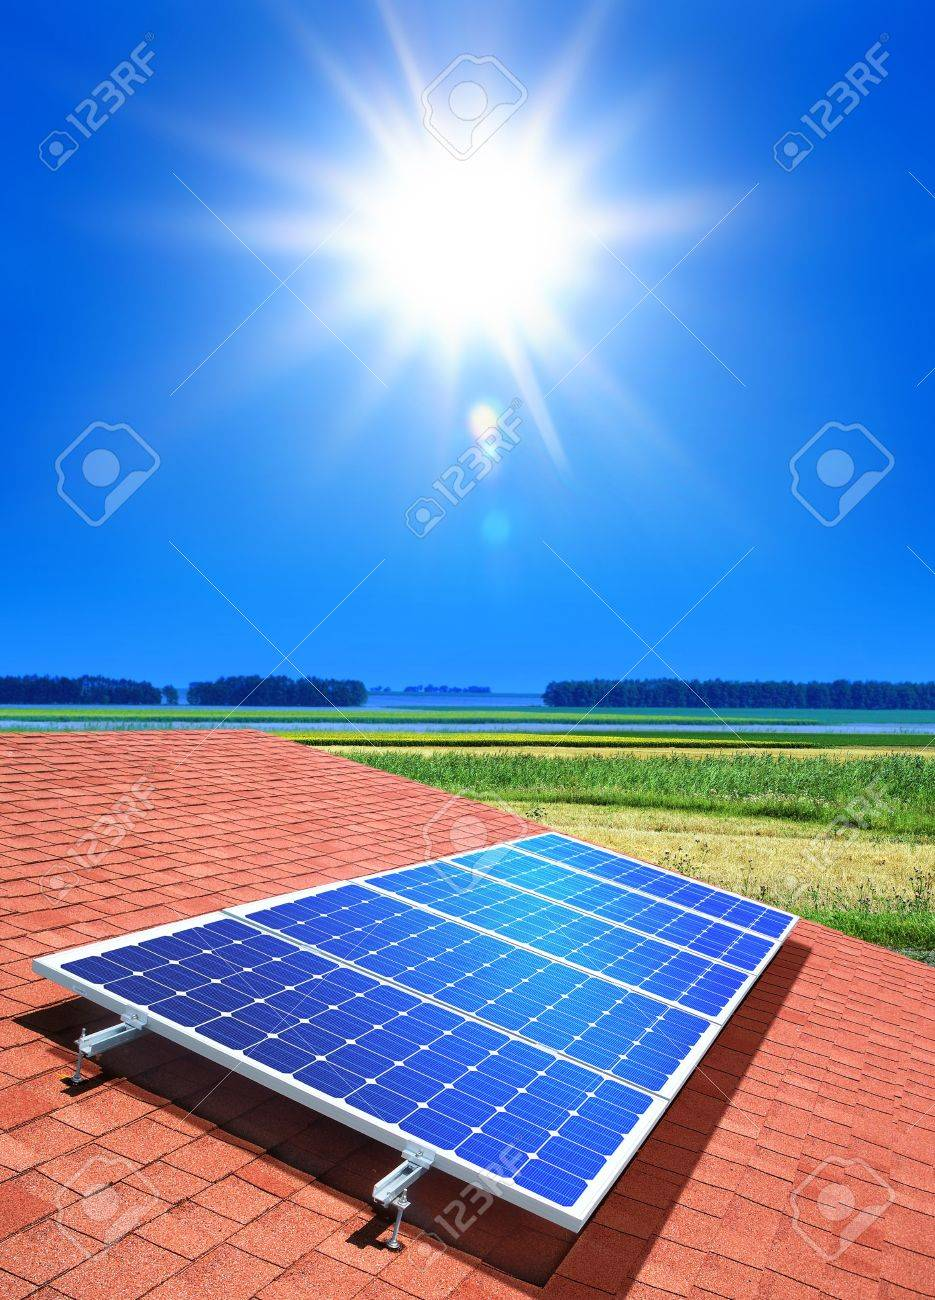 solar-cell array on the roof of private home Stock Photo - 7885180